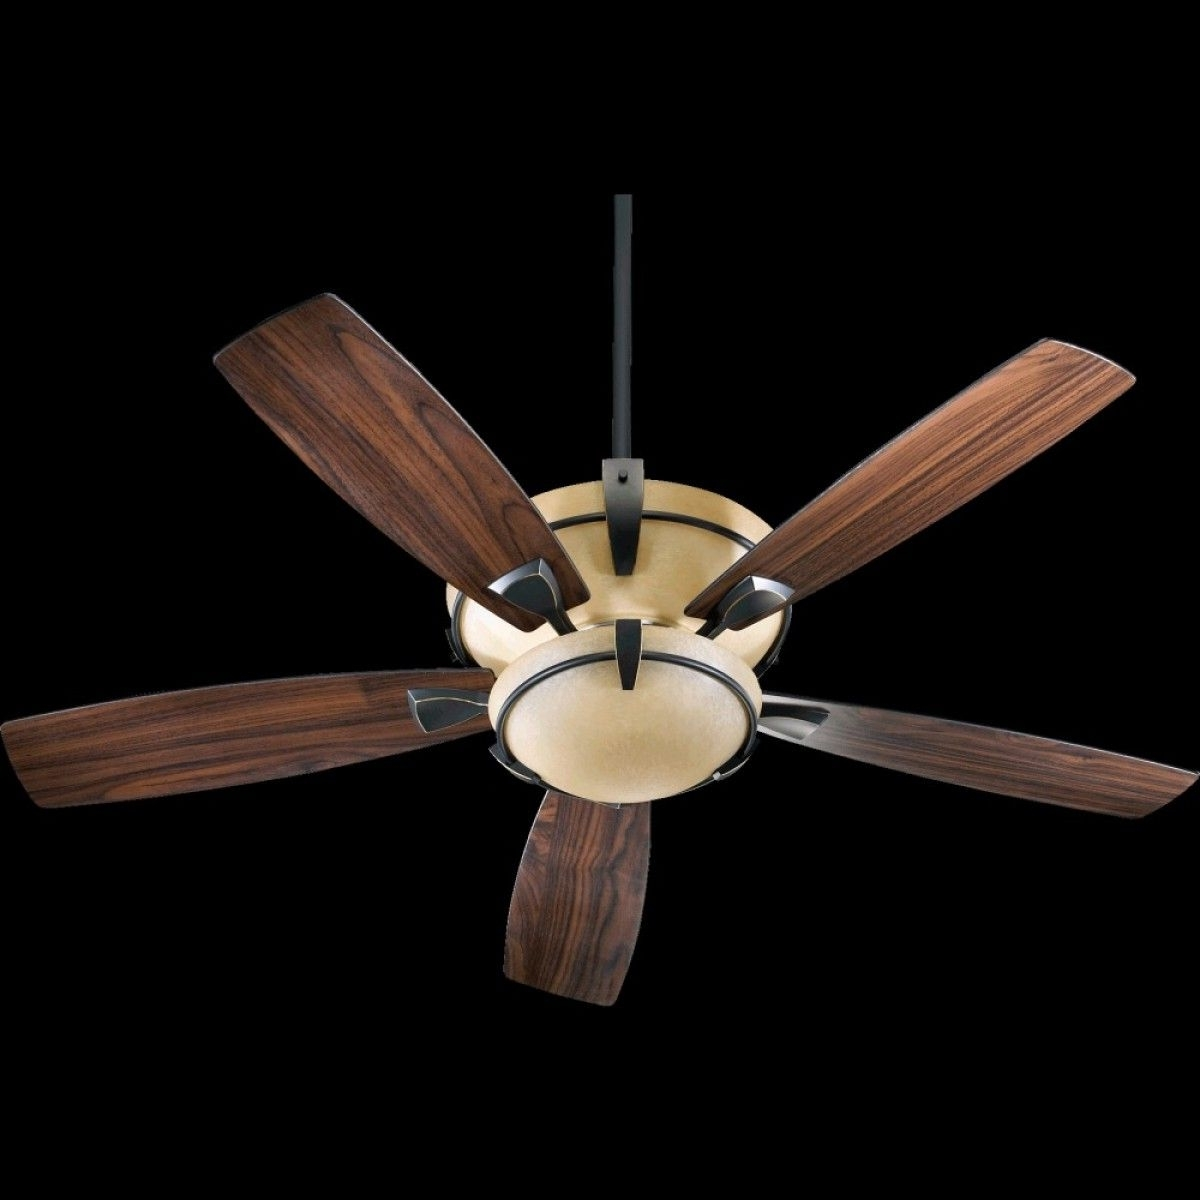 Newest Ceiling, Charming Ceiling Fans With Uplights Uplight Ceiling Fan In Outdoor Ceiling Fans With Uplights (View 2 of 20)